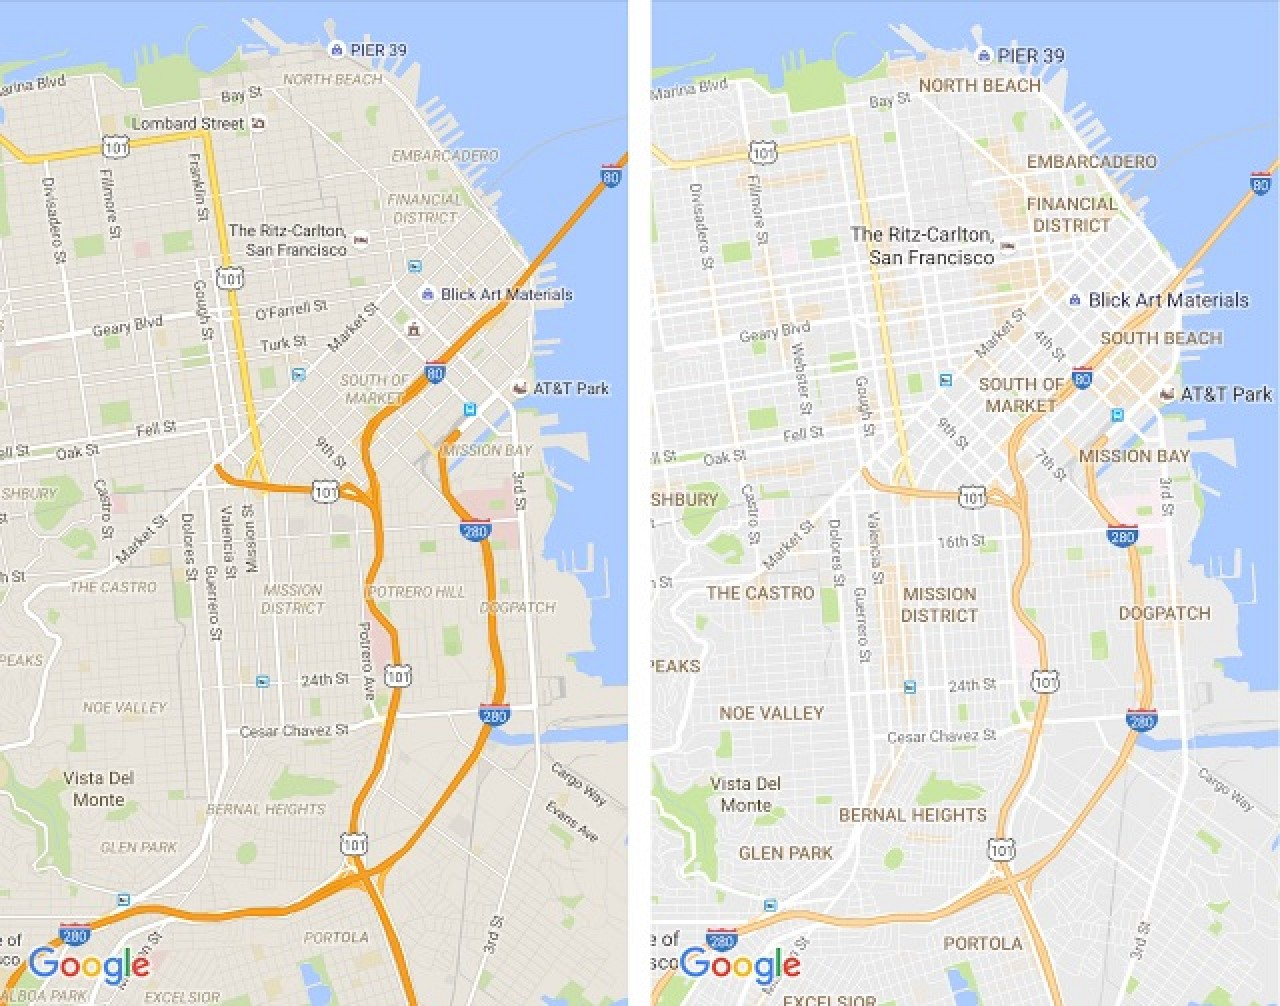 google maps gets cleaner look and orange 'areas of interest' hotspots  macrumors. google maps gets cleaner look and orange 'areas of interest